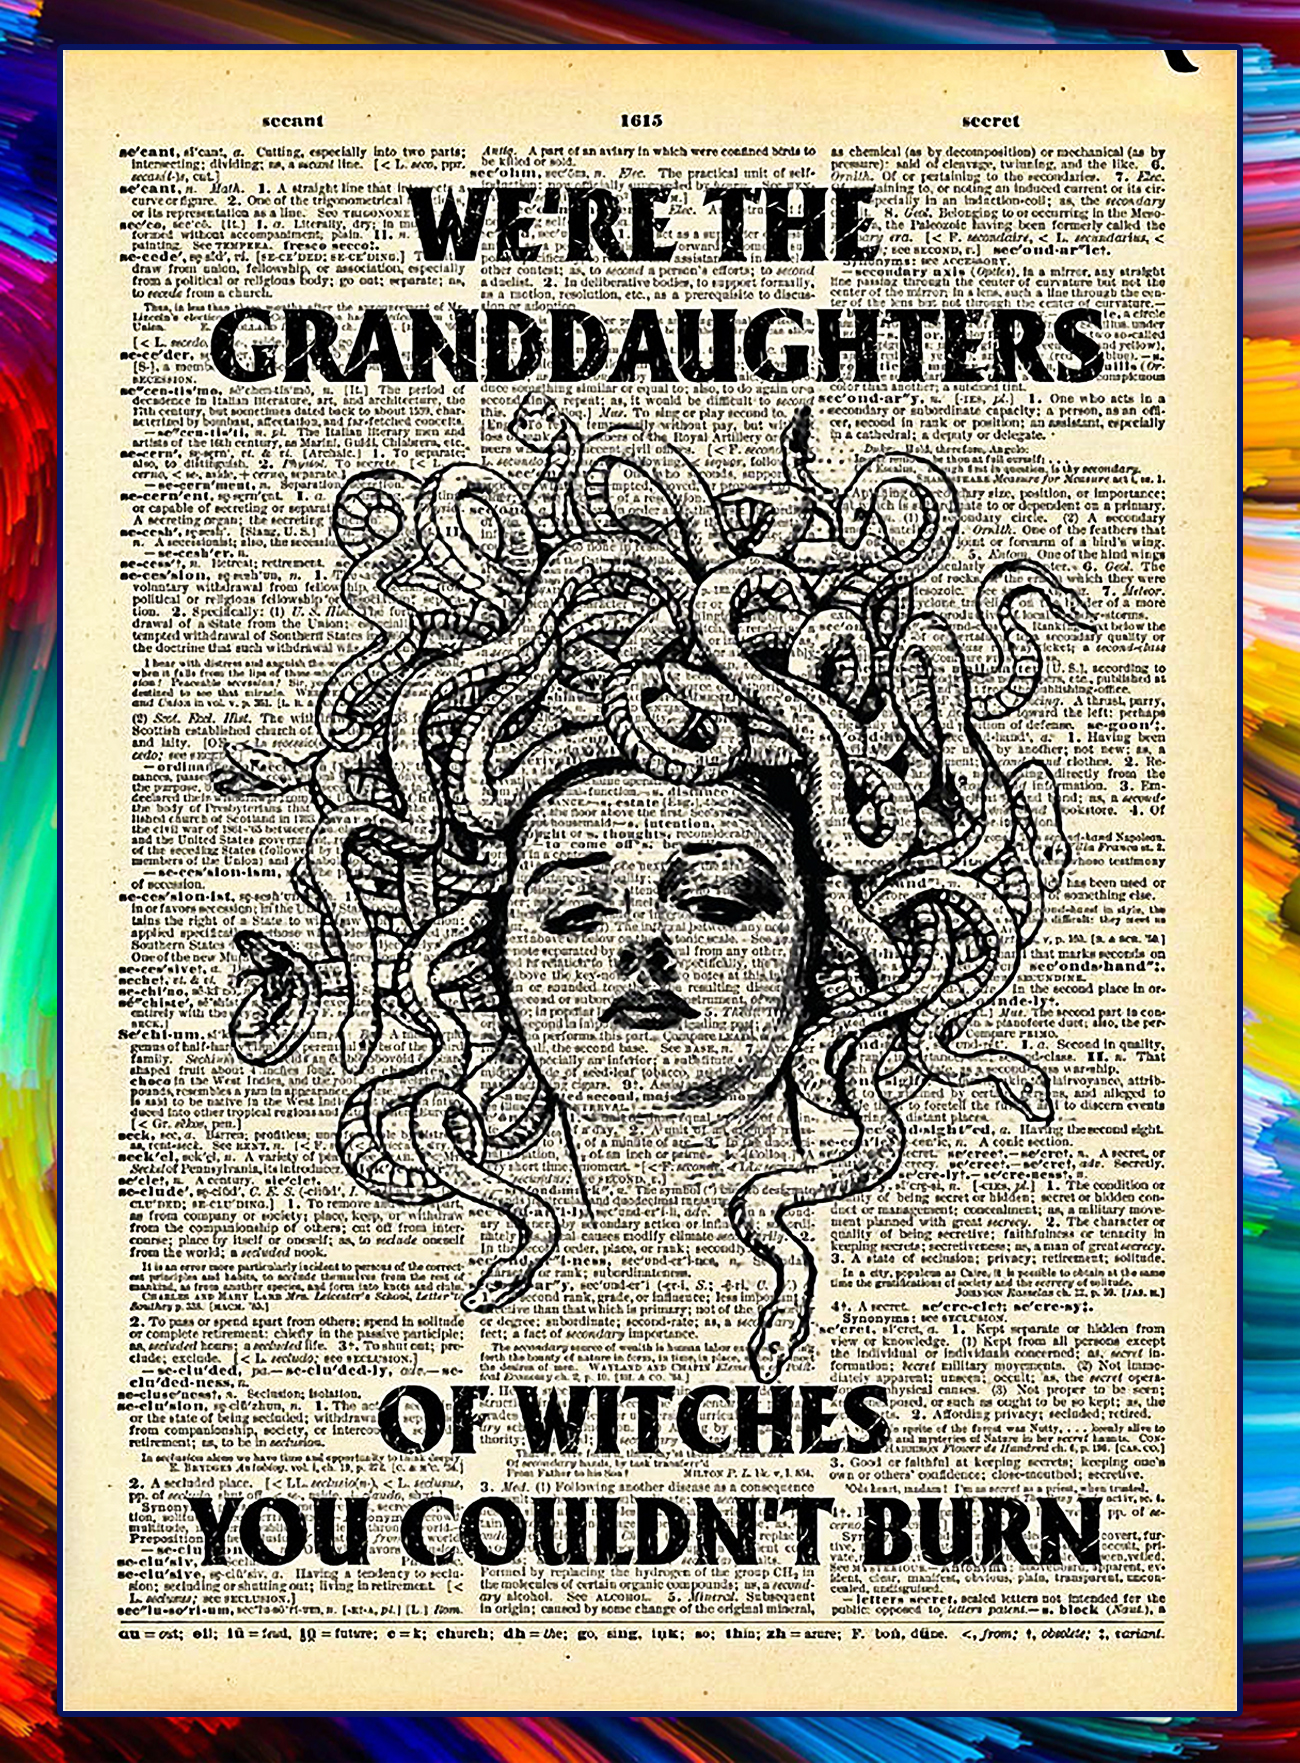 https://moteefe.com/store/hot-were-the-granddaughter-of-witches-you-couldnt-burn-poster